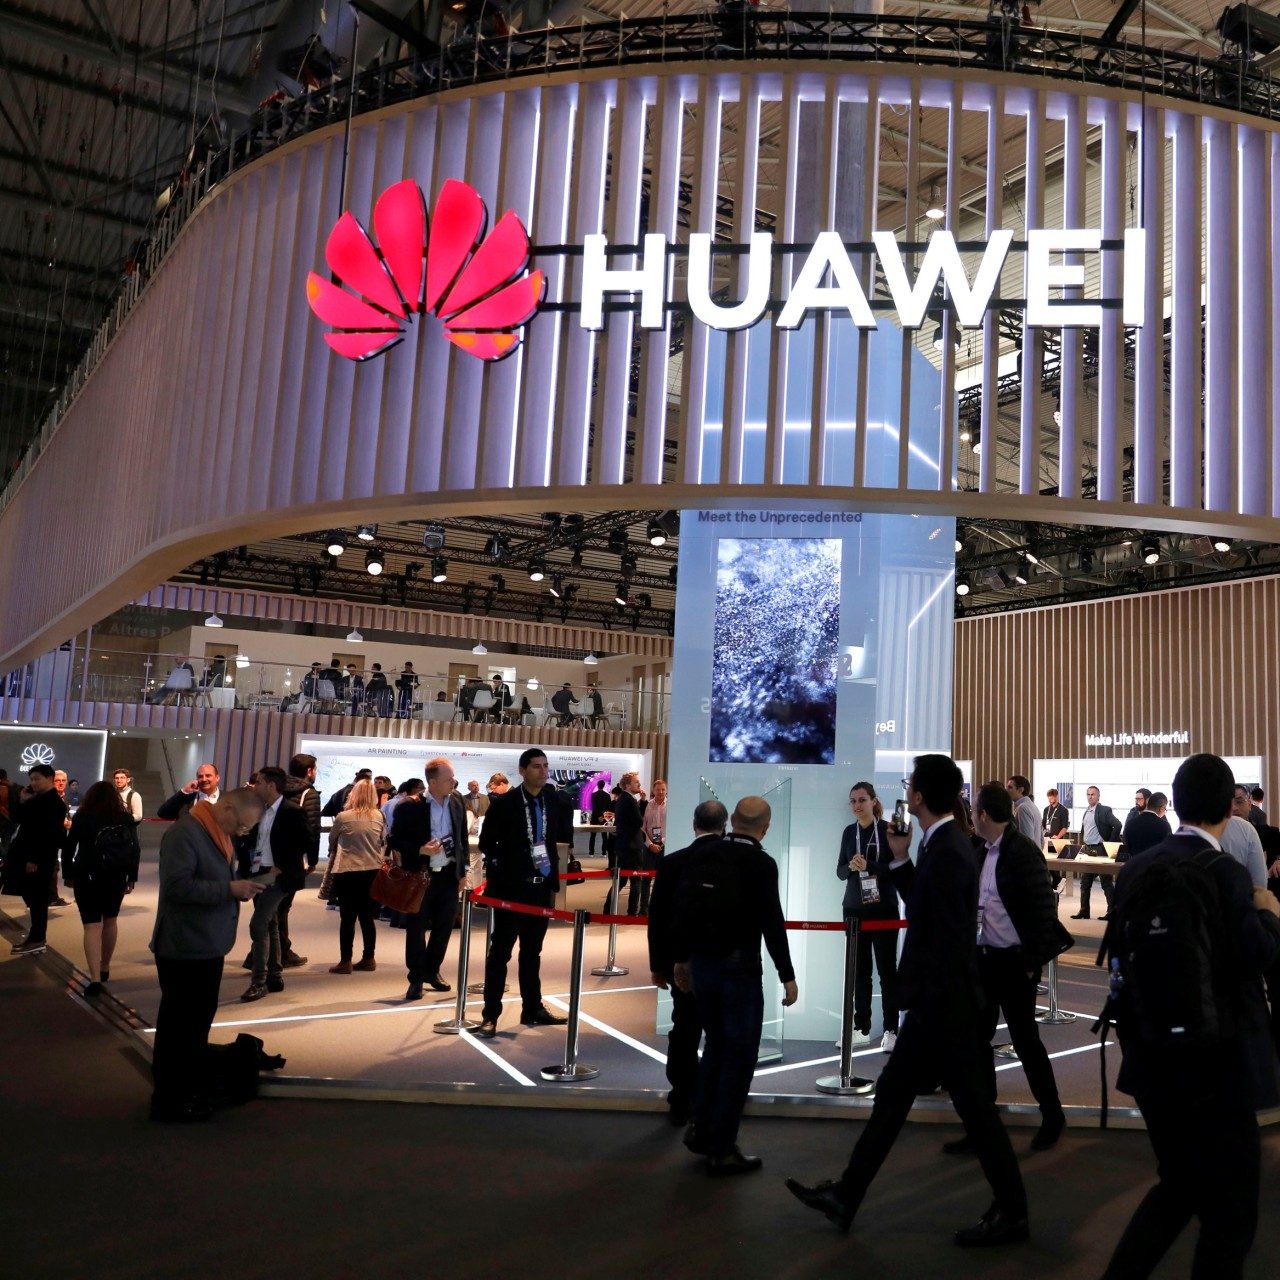 Huawei confirms it has built its own operating system just in case